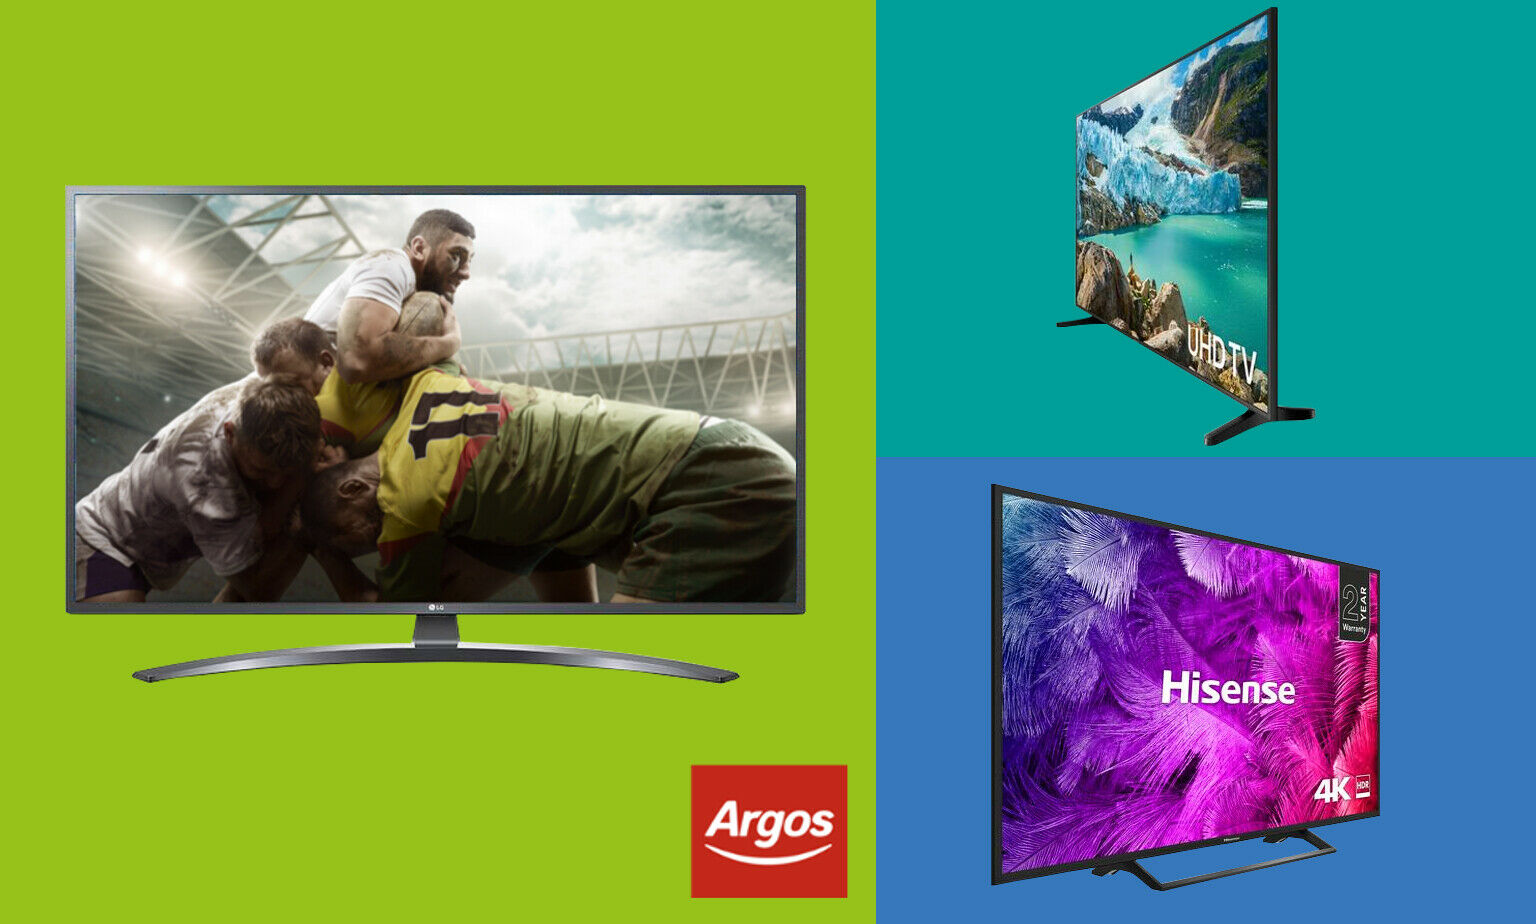 Get Ready For the Rugby with Bestselling TVs